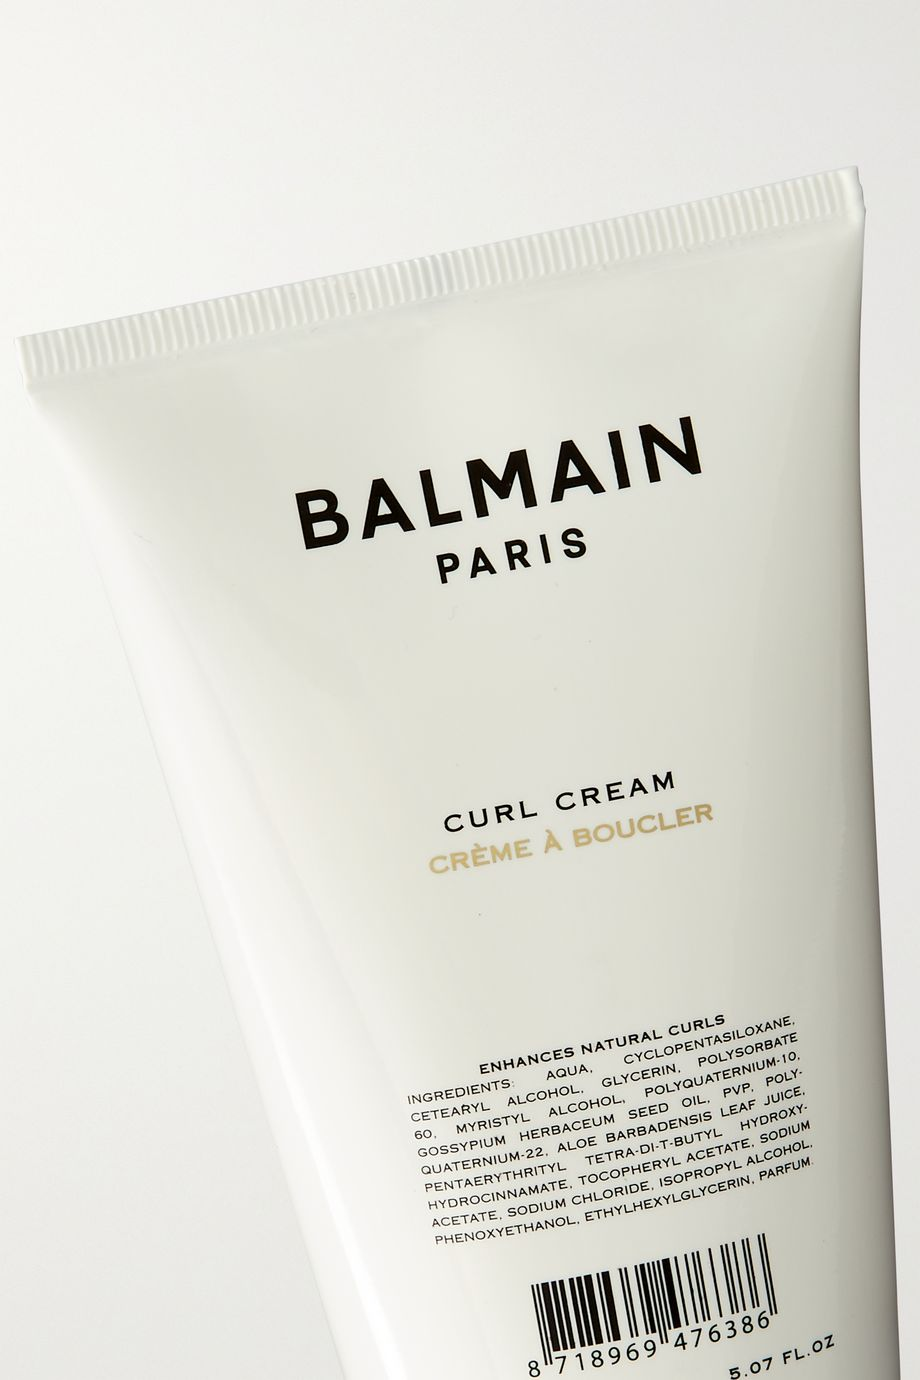 BALMAIN PARIS HAIR COUTURE Curl Cream, 150ml